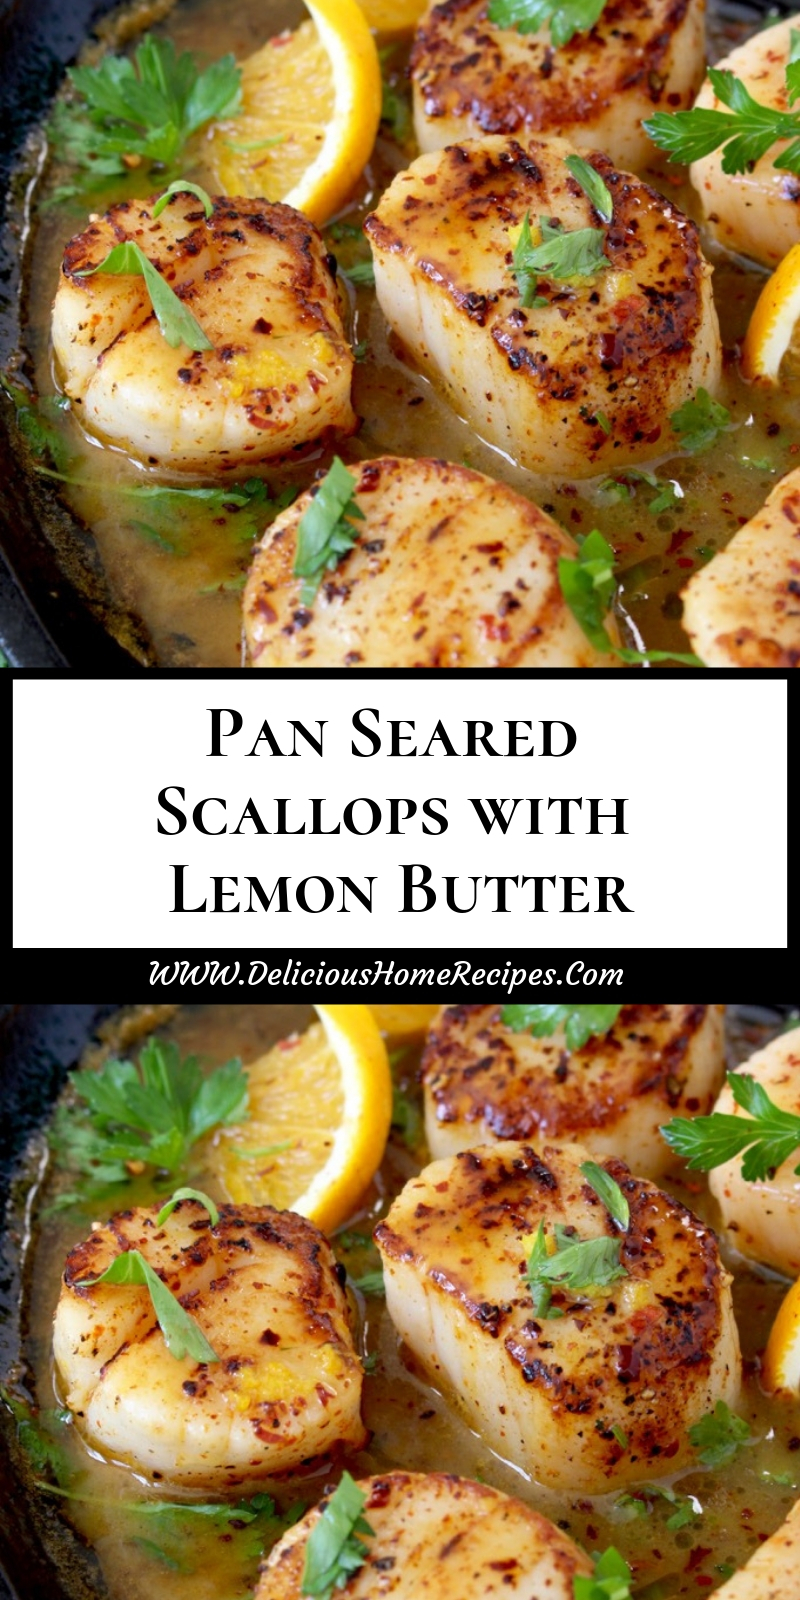 Pan Seared Scallops With Lemon Butter